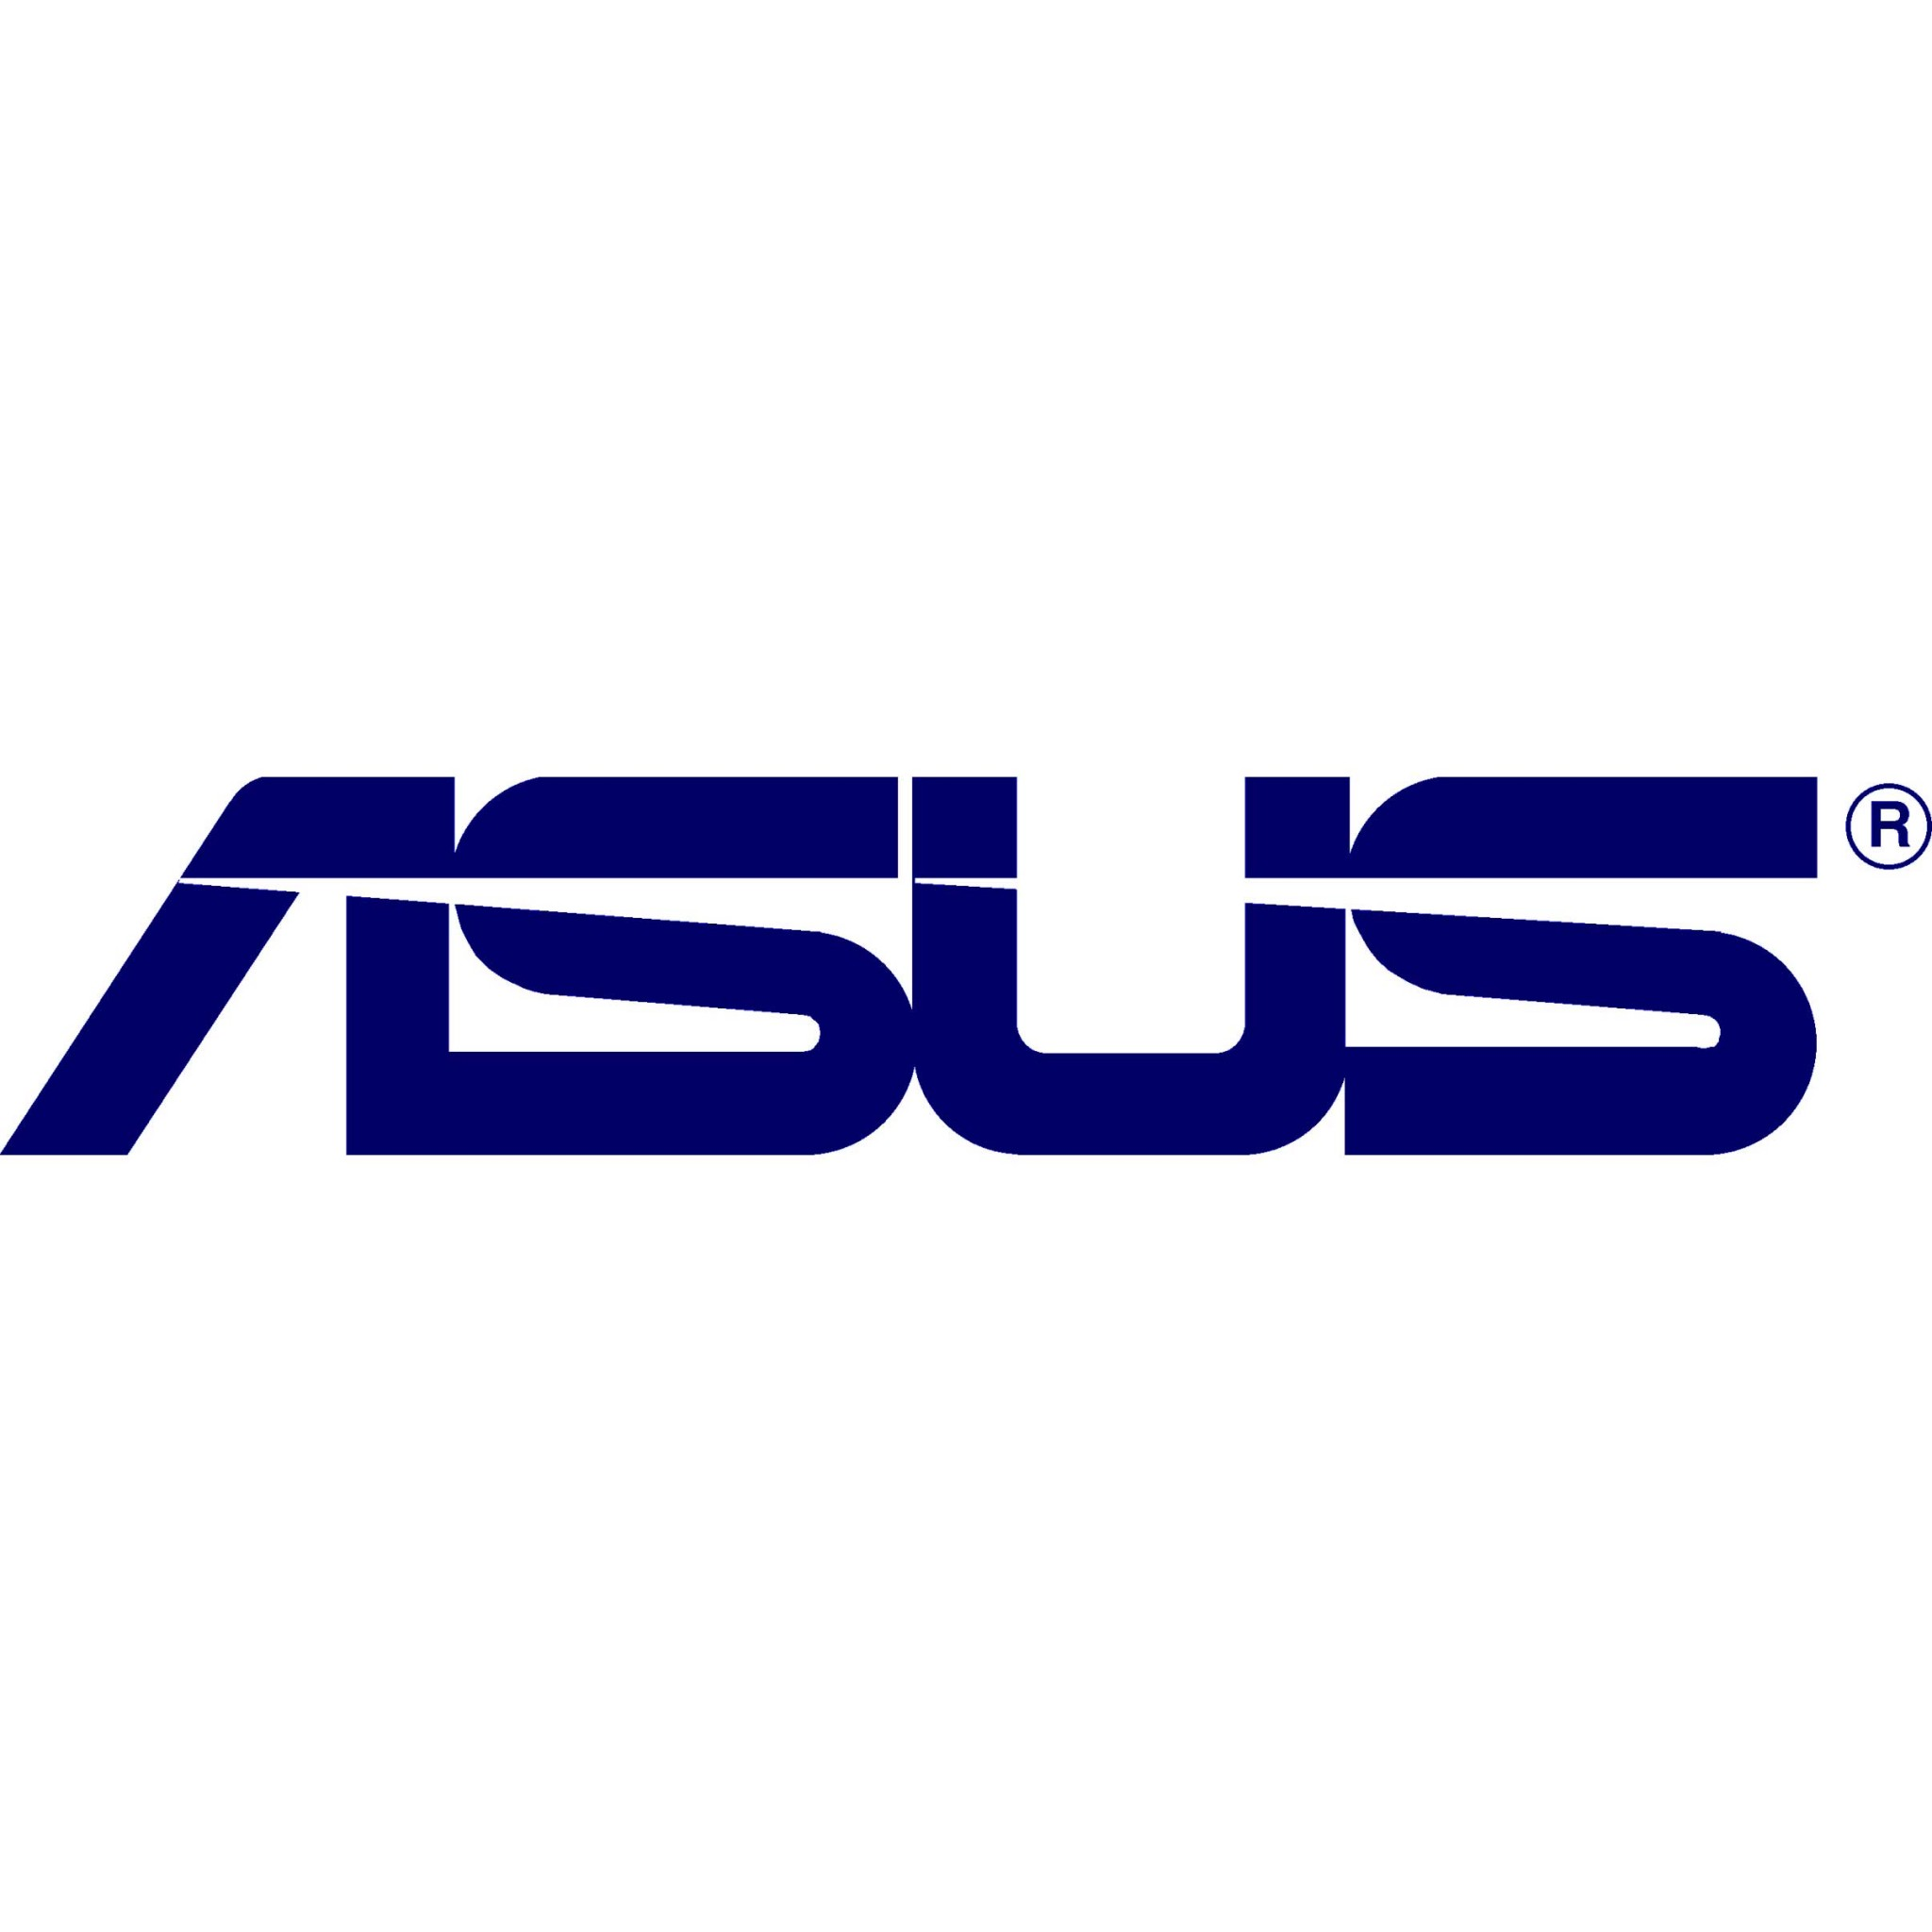 Asus logo Wallpaper